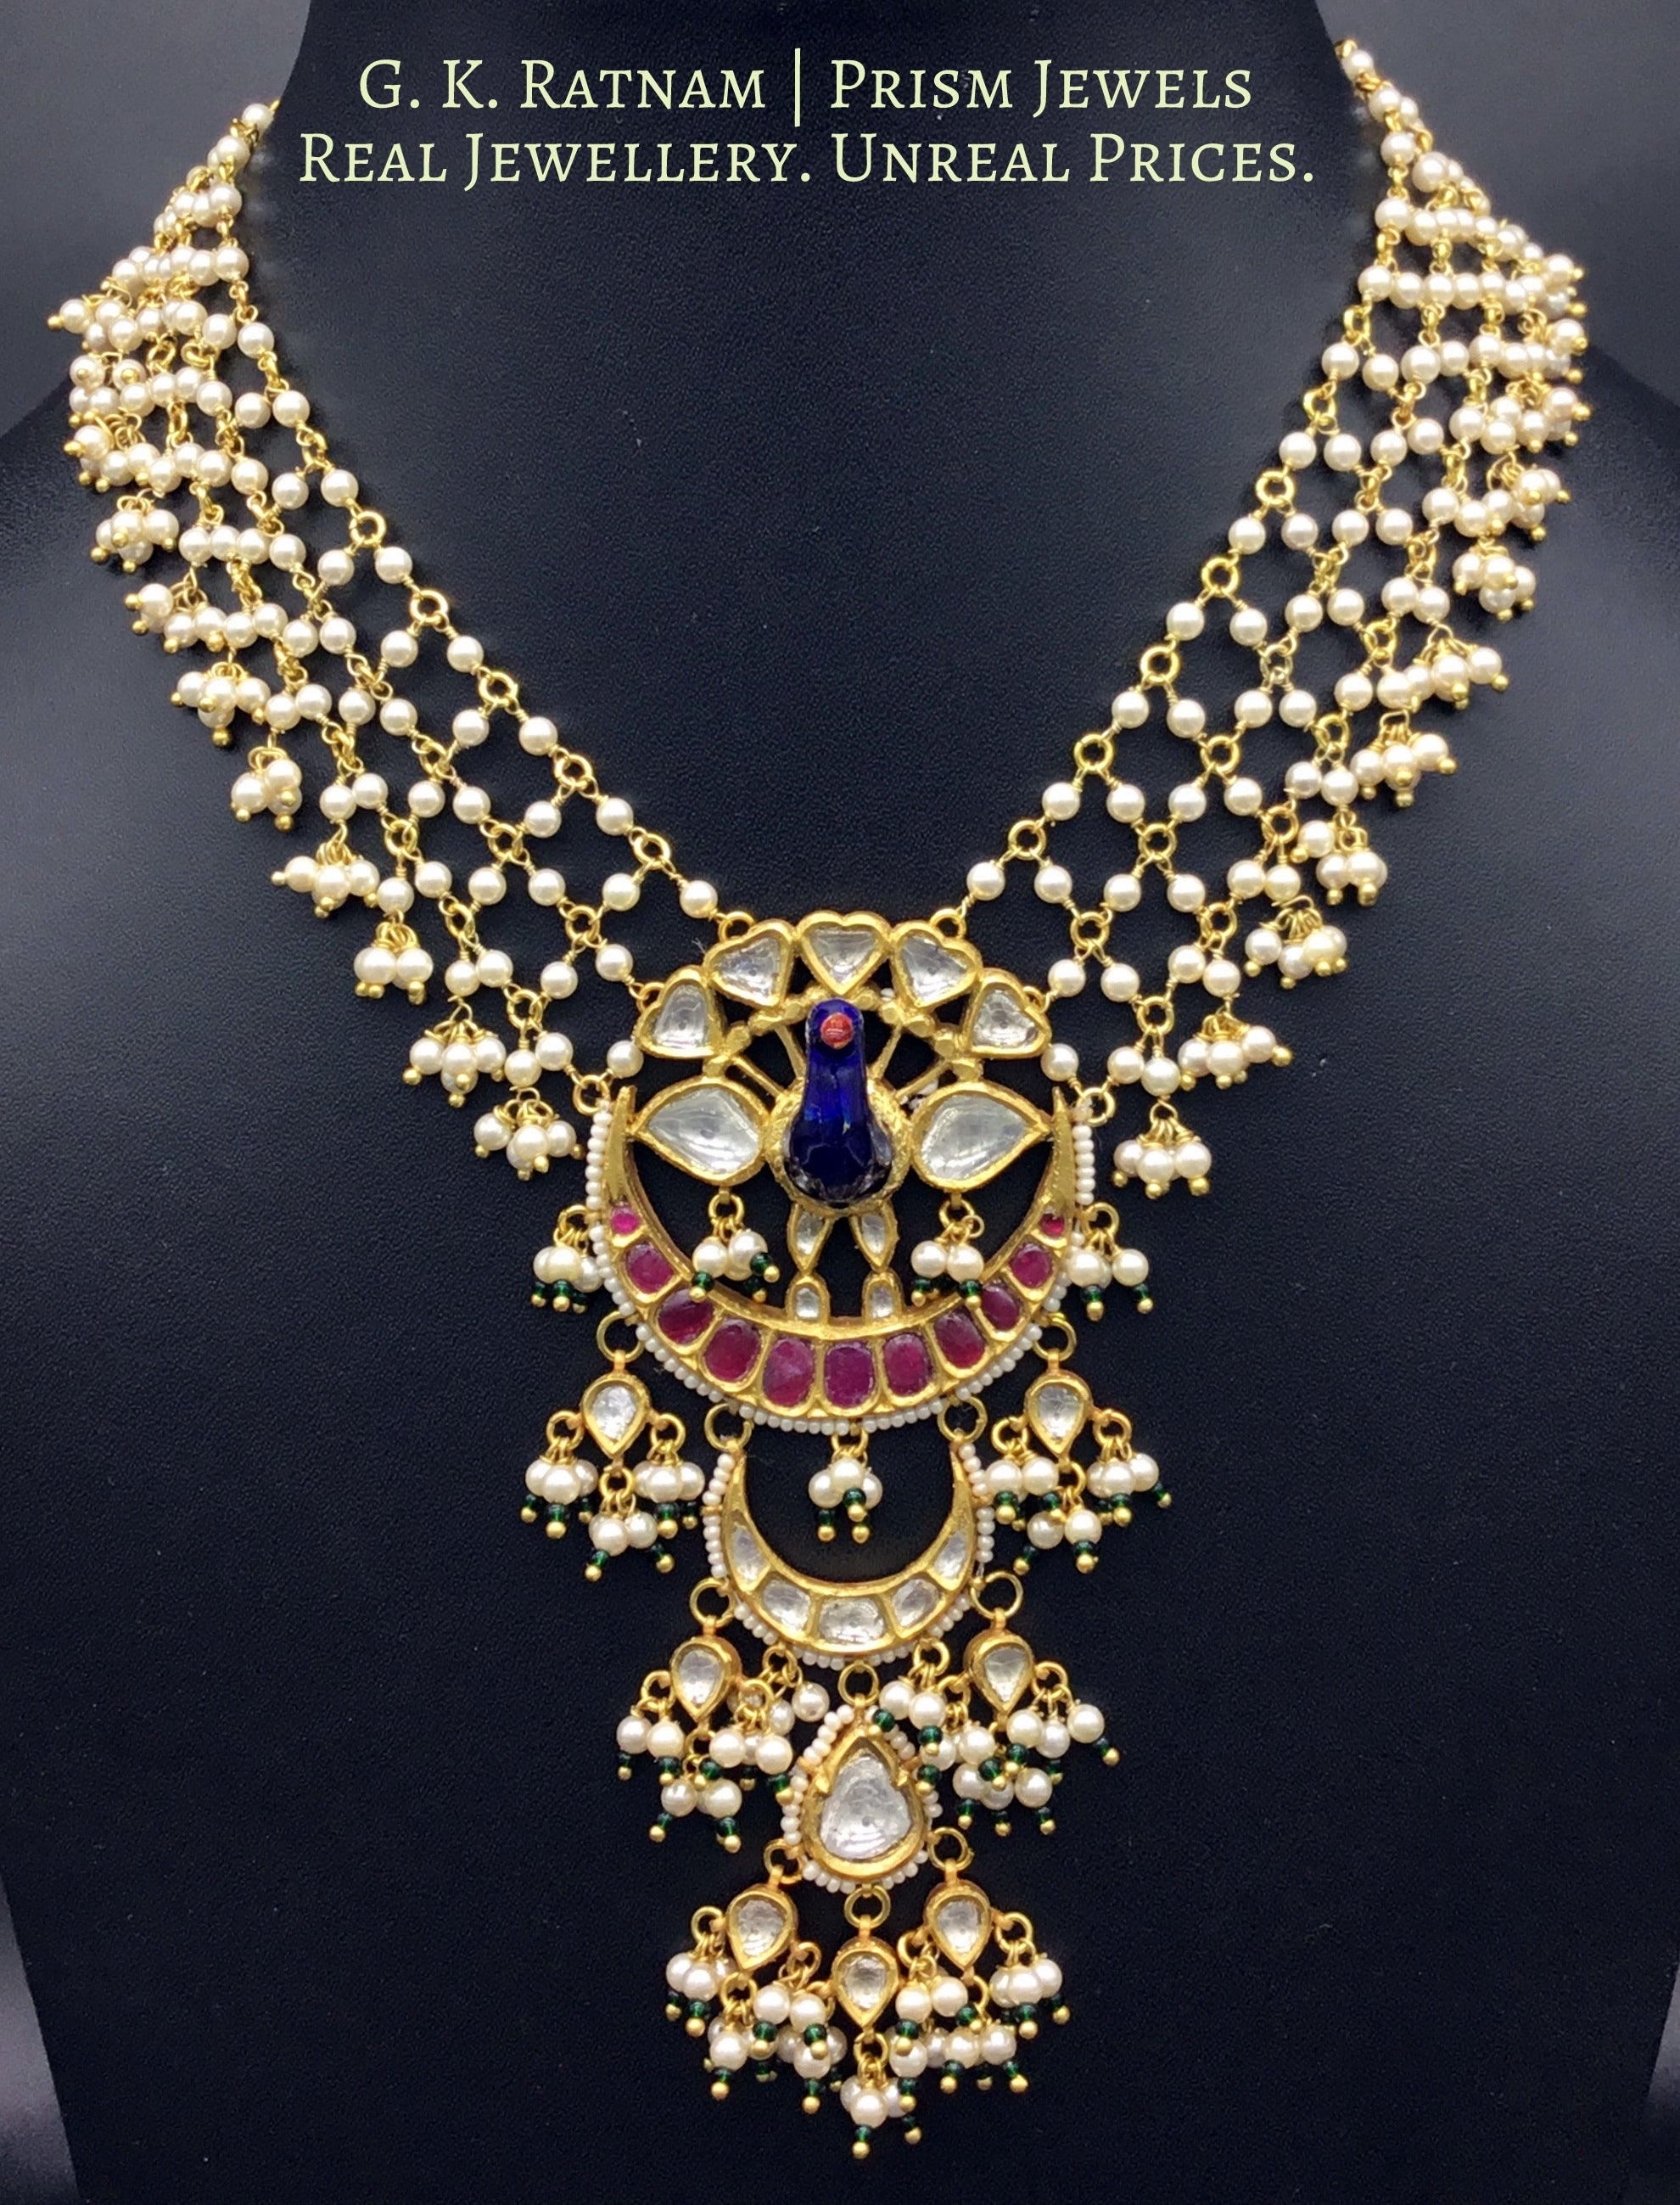 22k Gold and Diamond Polki Peacock Pendant with lustrous pearls strung in a mesh - gold diamond polki kundan meena jadau jewellery